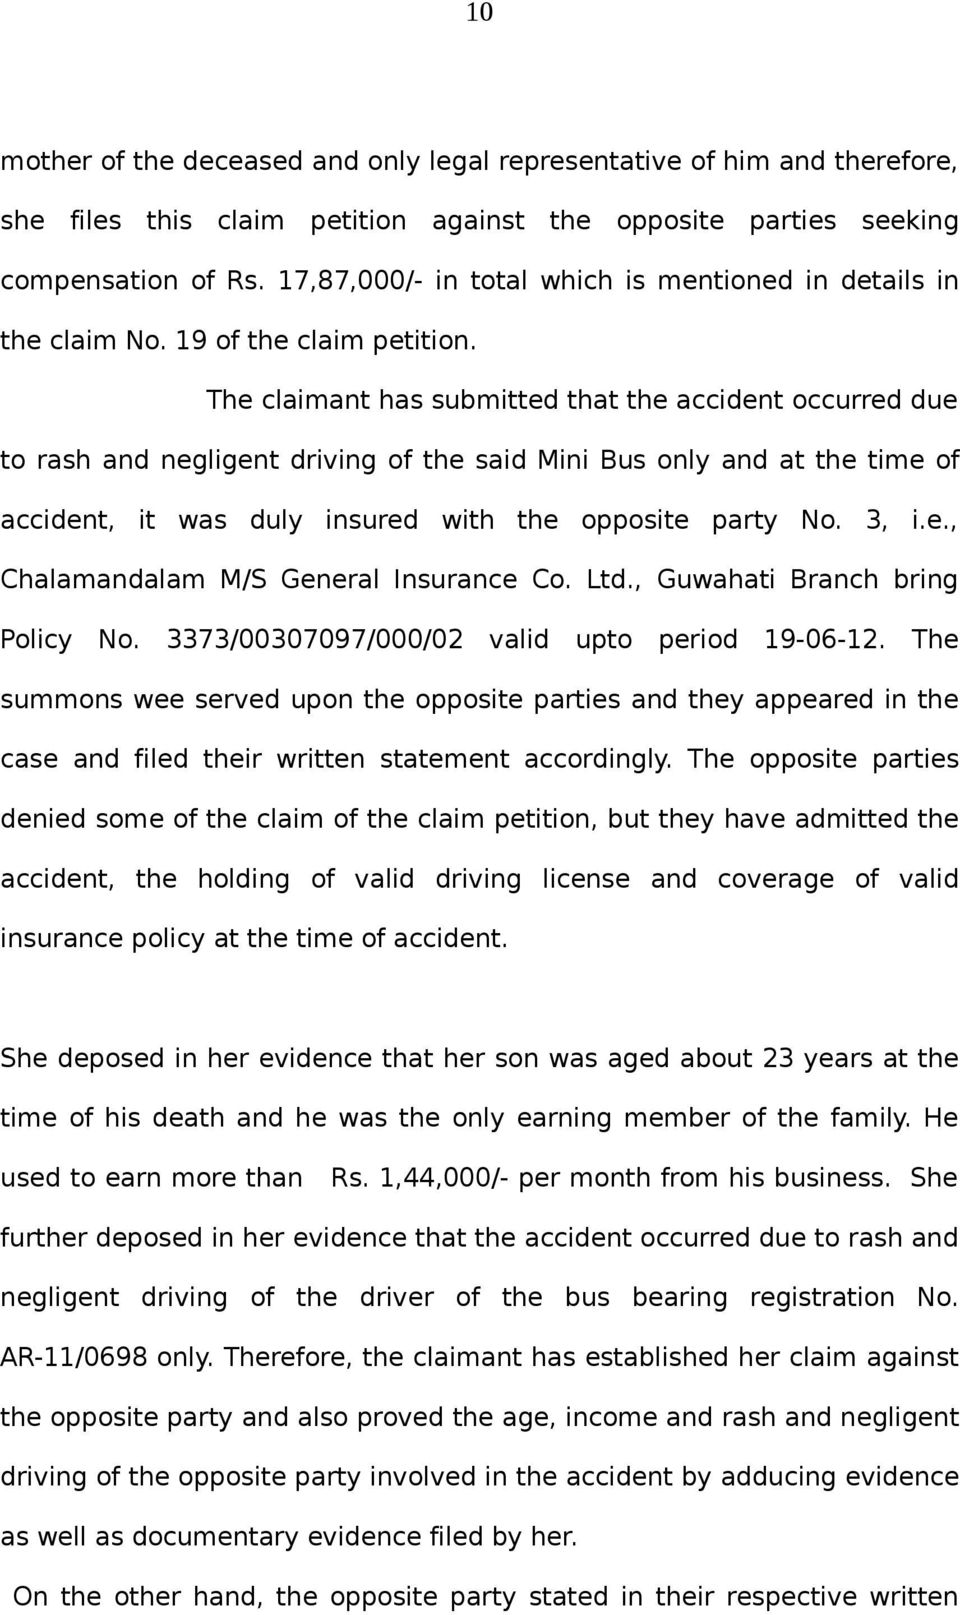 The claimant has submitted that the accident occurred due to rash and negligent driving of the said Mini Bus only and at the time of accident, it was duly insured with the opposite party No. 3, i.e., Chalamandalam M/S General Insurance Co.